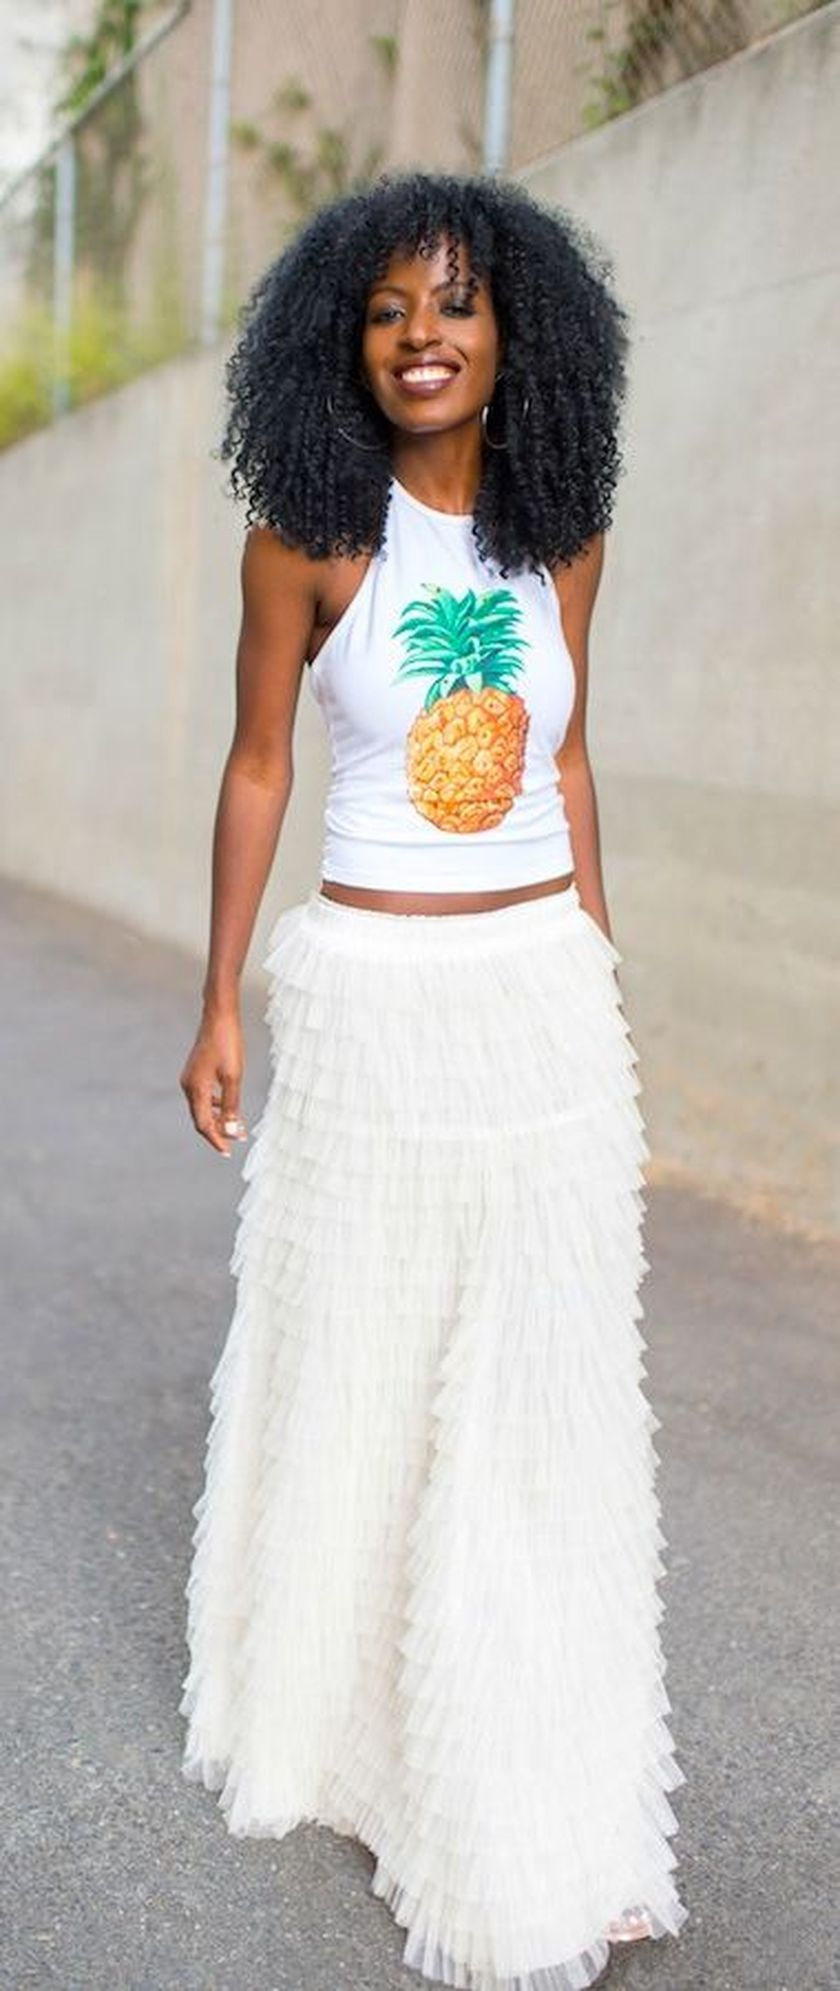 Cute pineapple tank top must you have 56